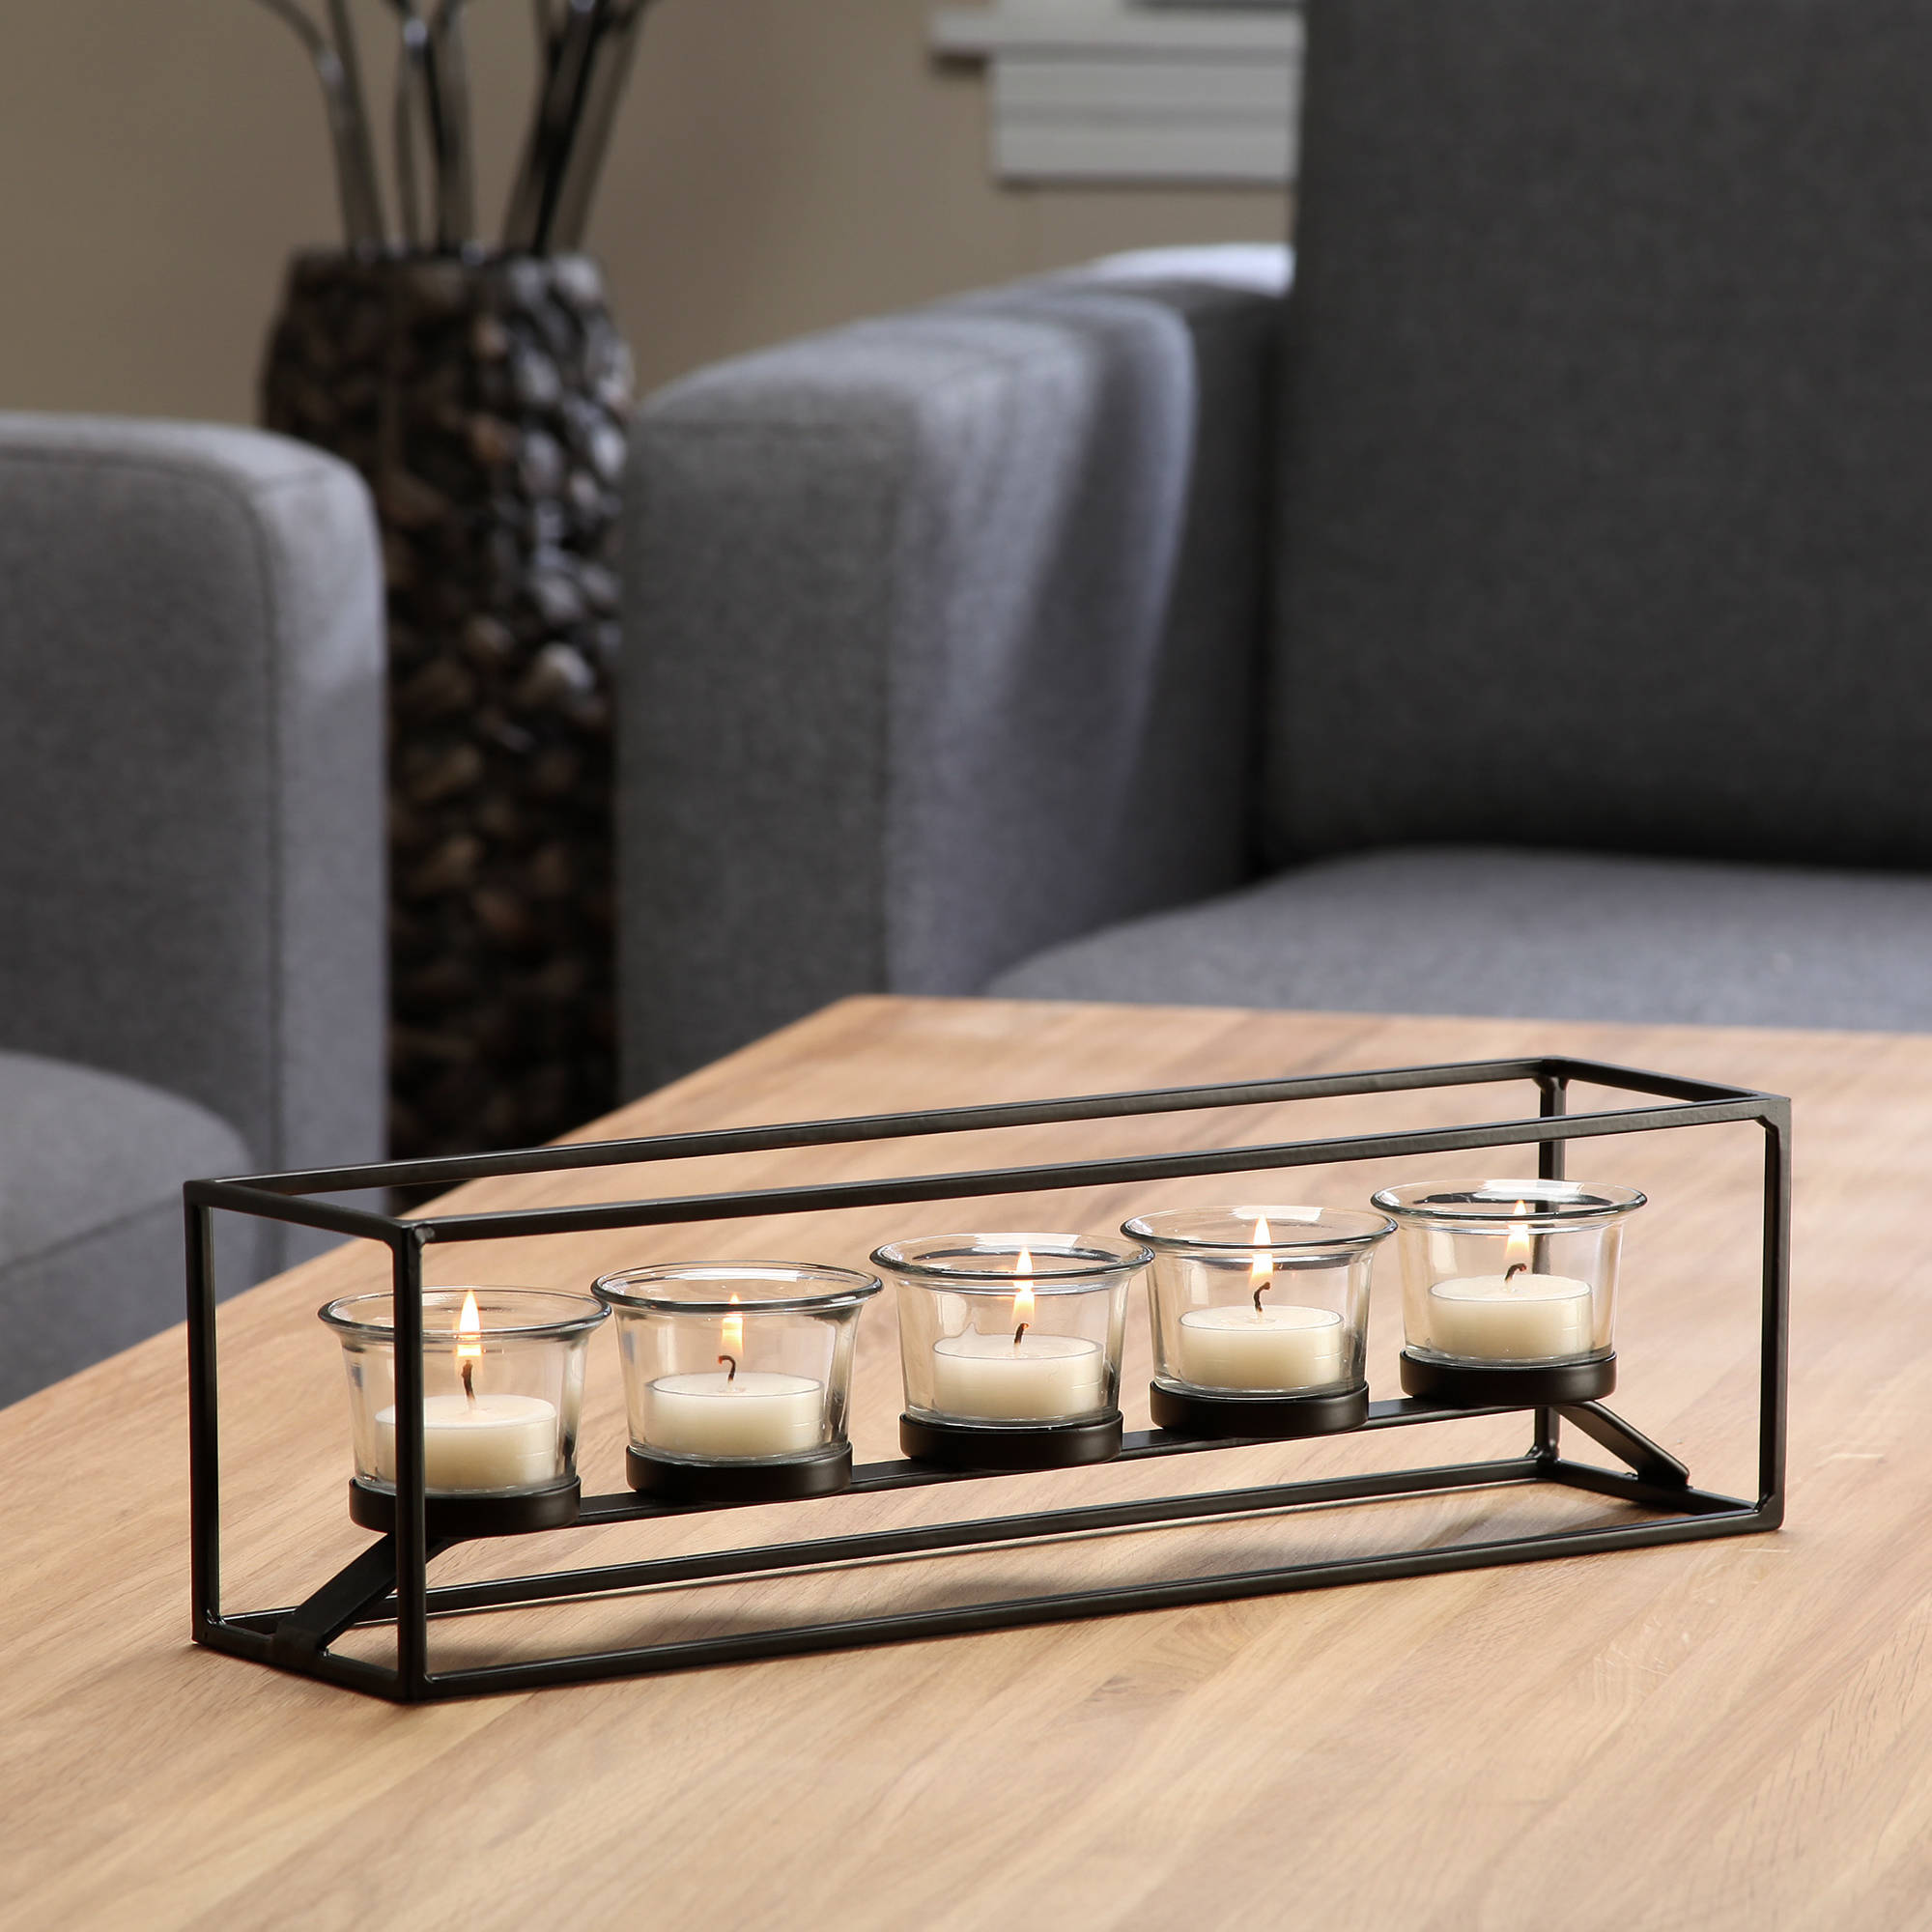 Better Homes and Gardens 5-Light Metal Tealight Candle Holder by HG Global, LLC